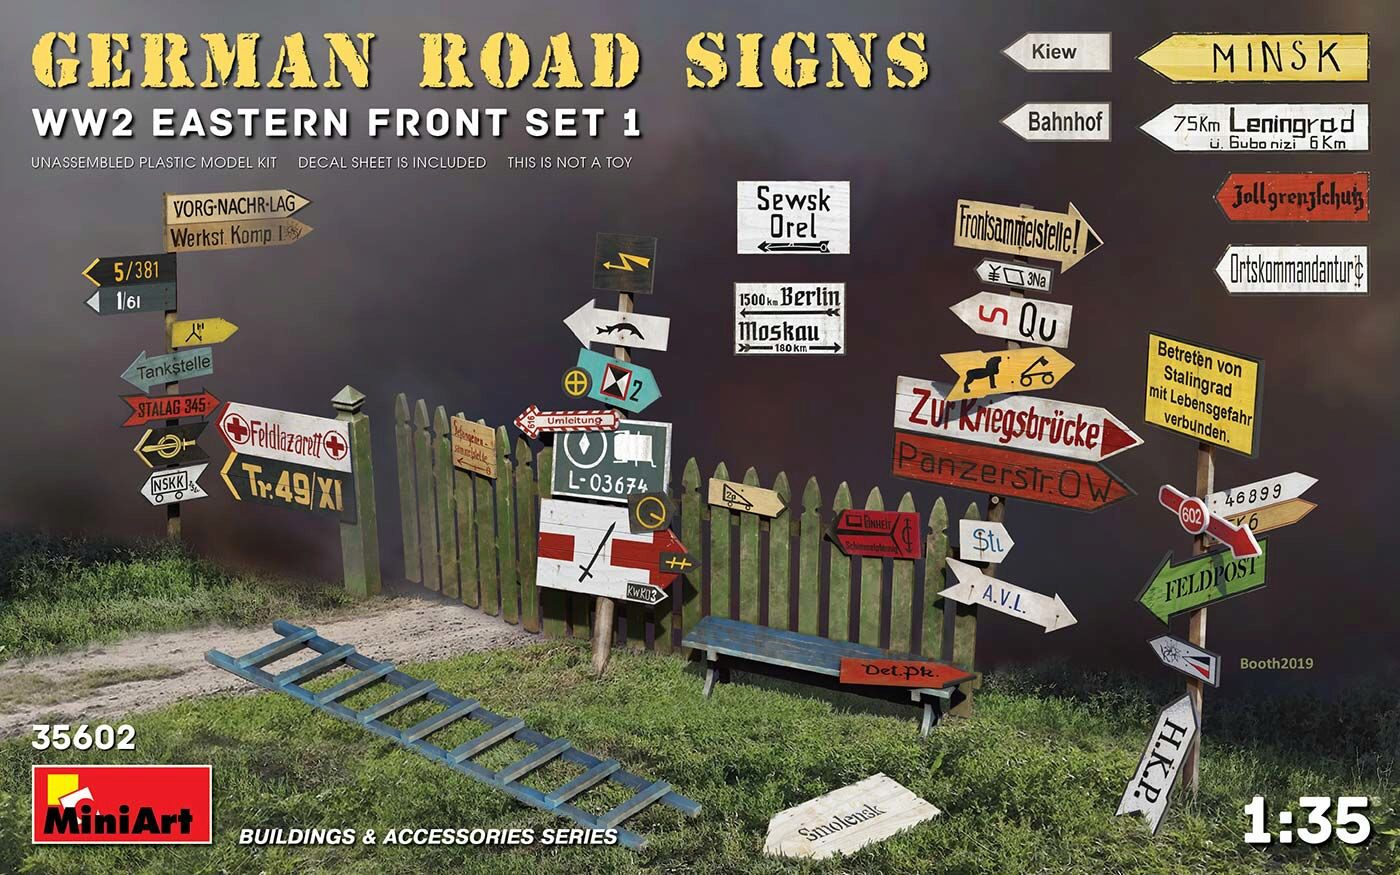 MiniArt 35602 German Road Signs WW2 (Eastern Front Set 1)